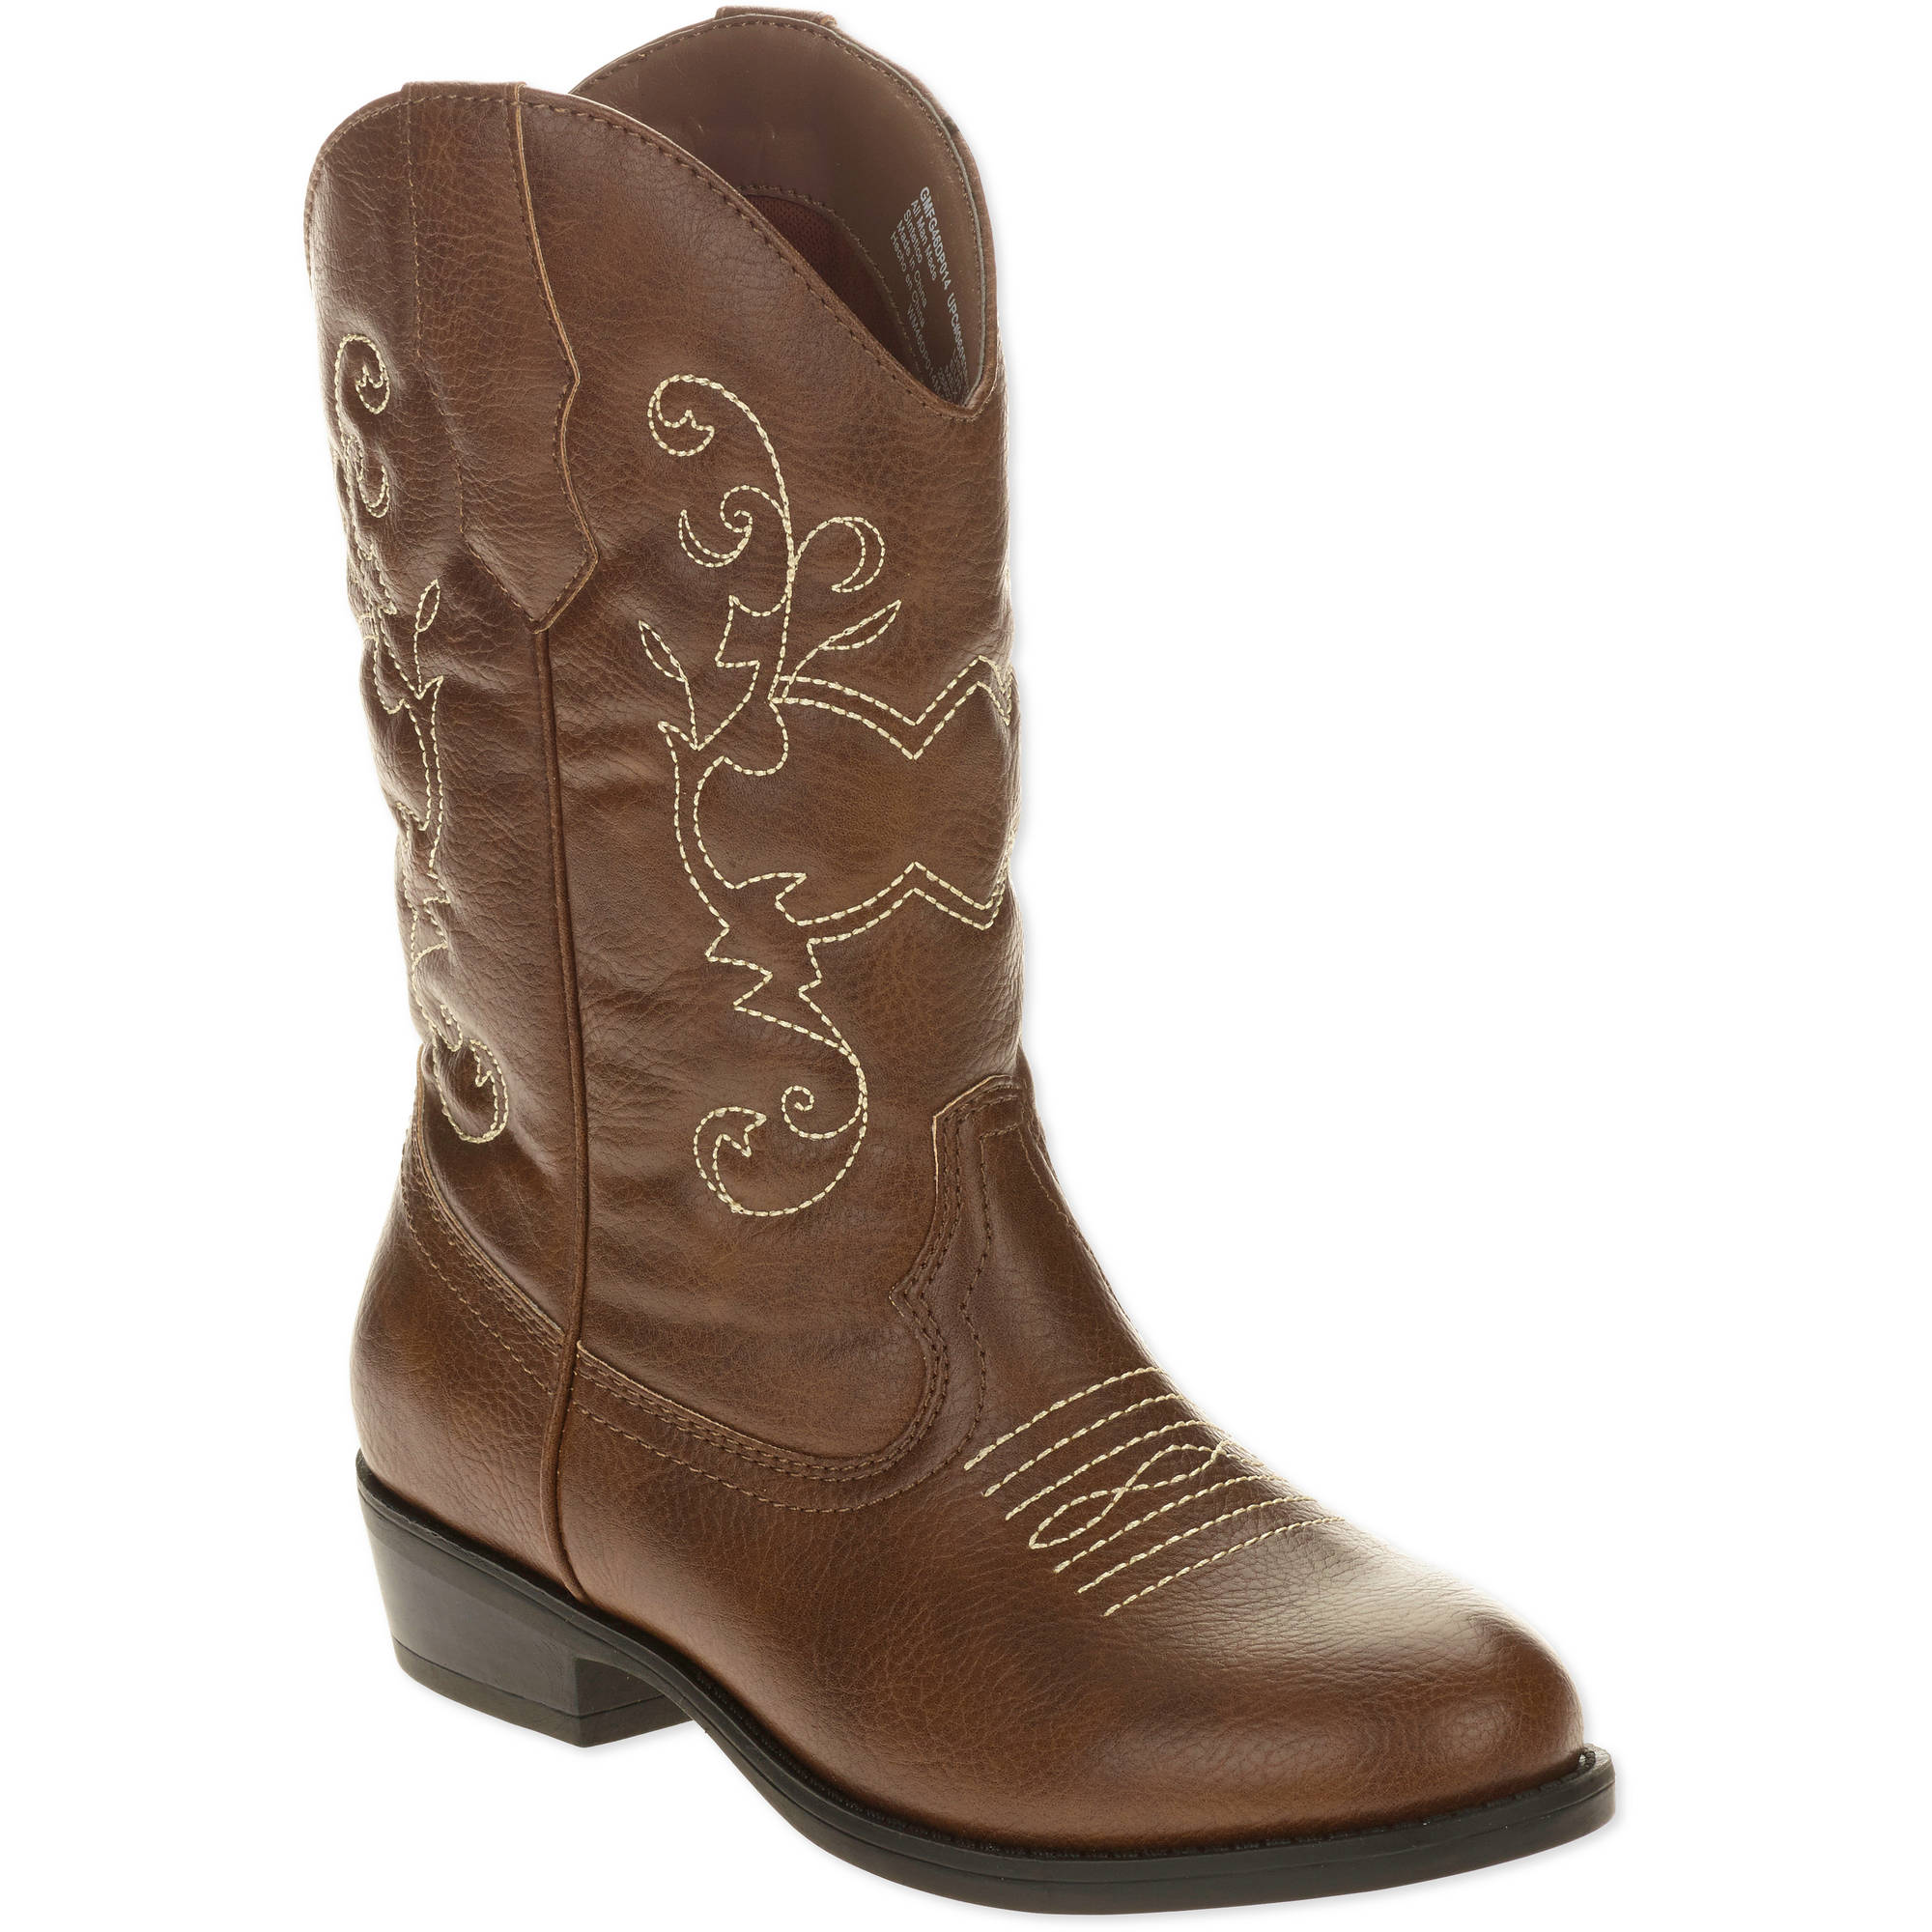 Faded Glory Girls' Cowboy Boot ONLINE ONLY - Walmart.com